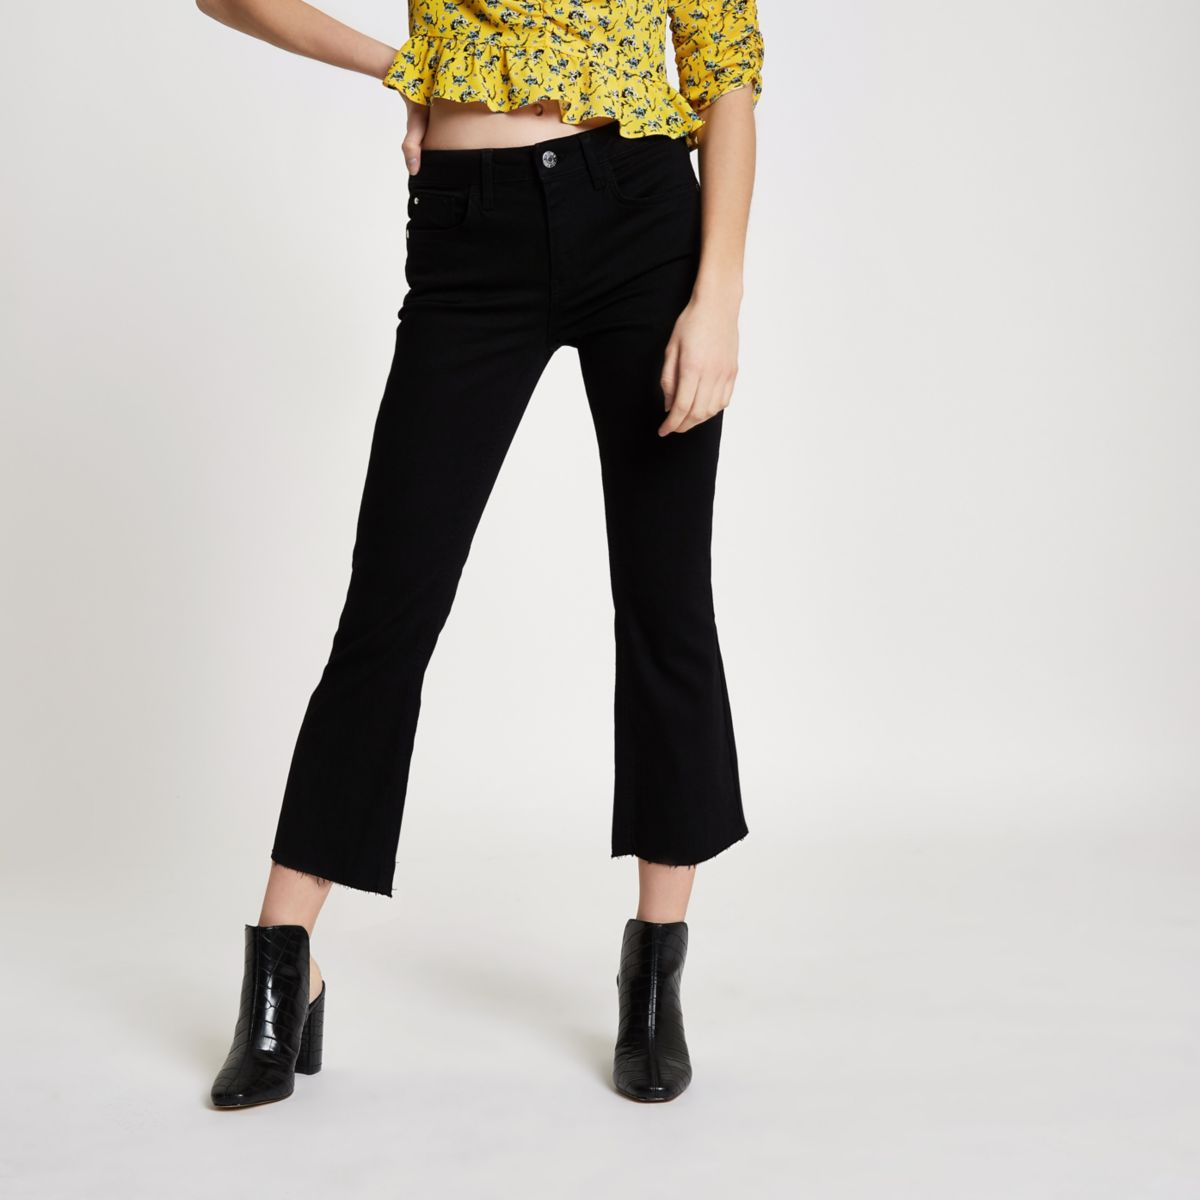 Petite black cropped flared jeans